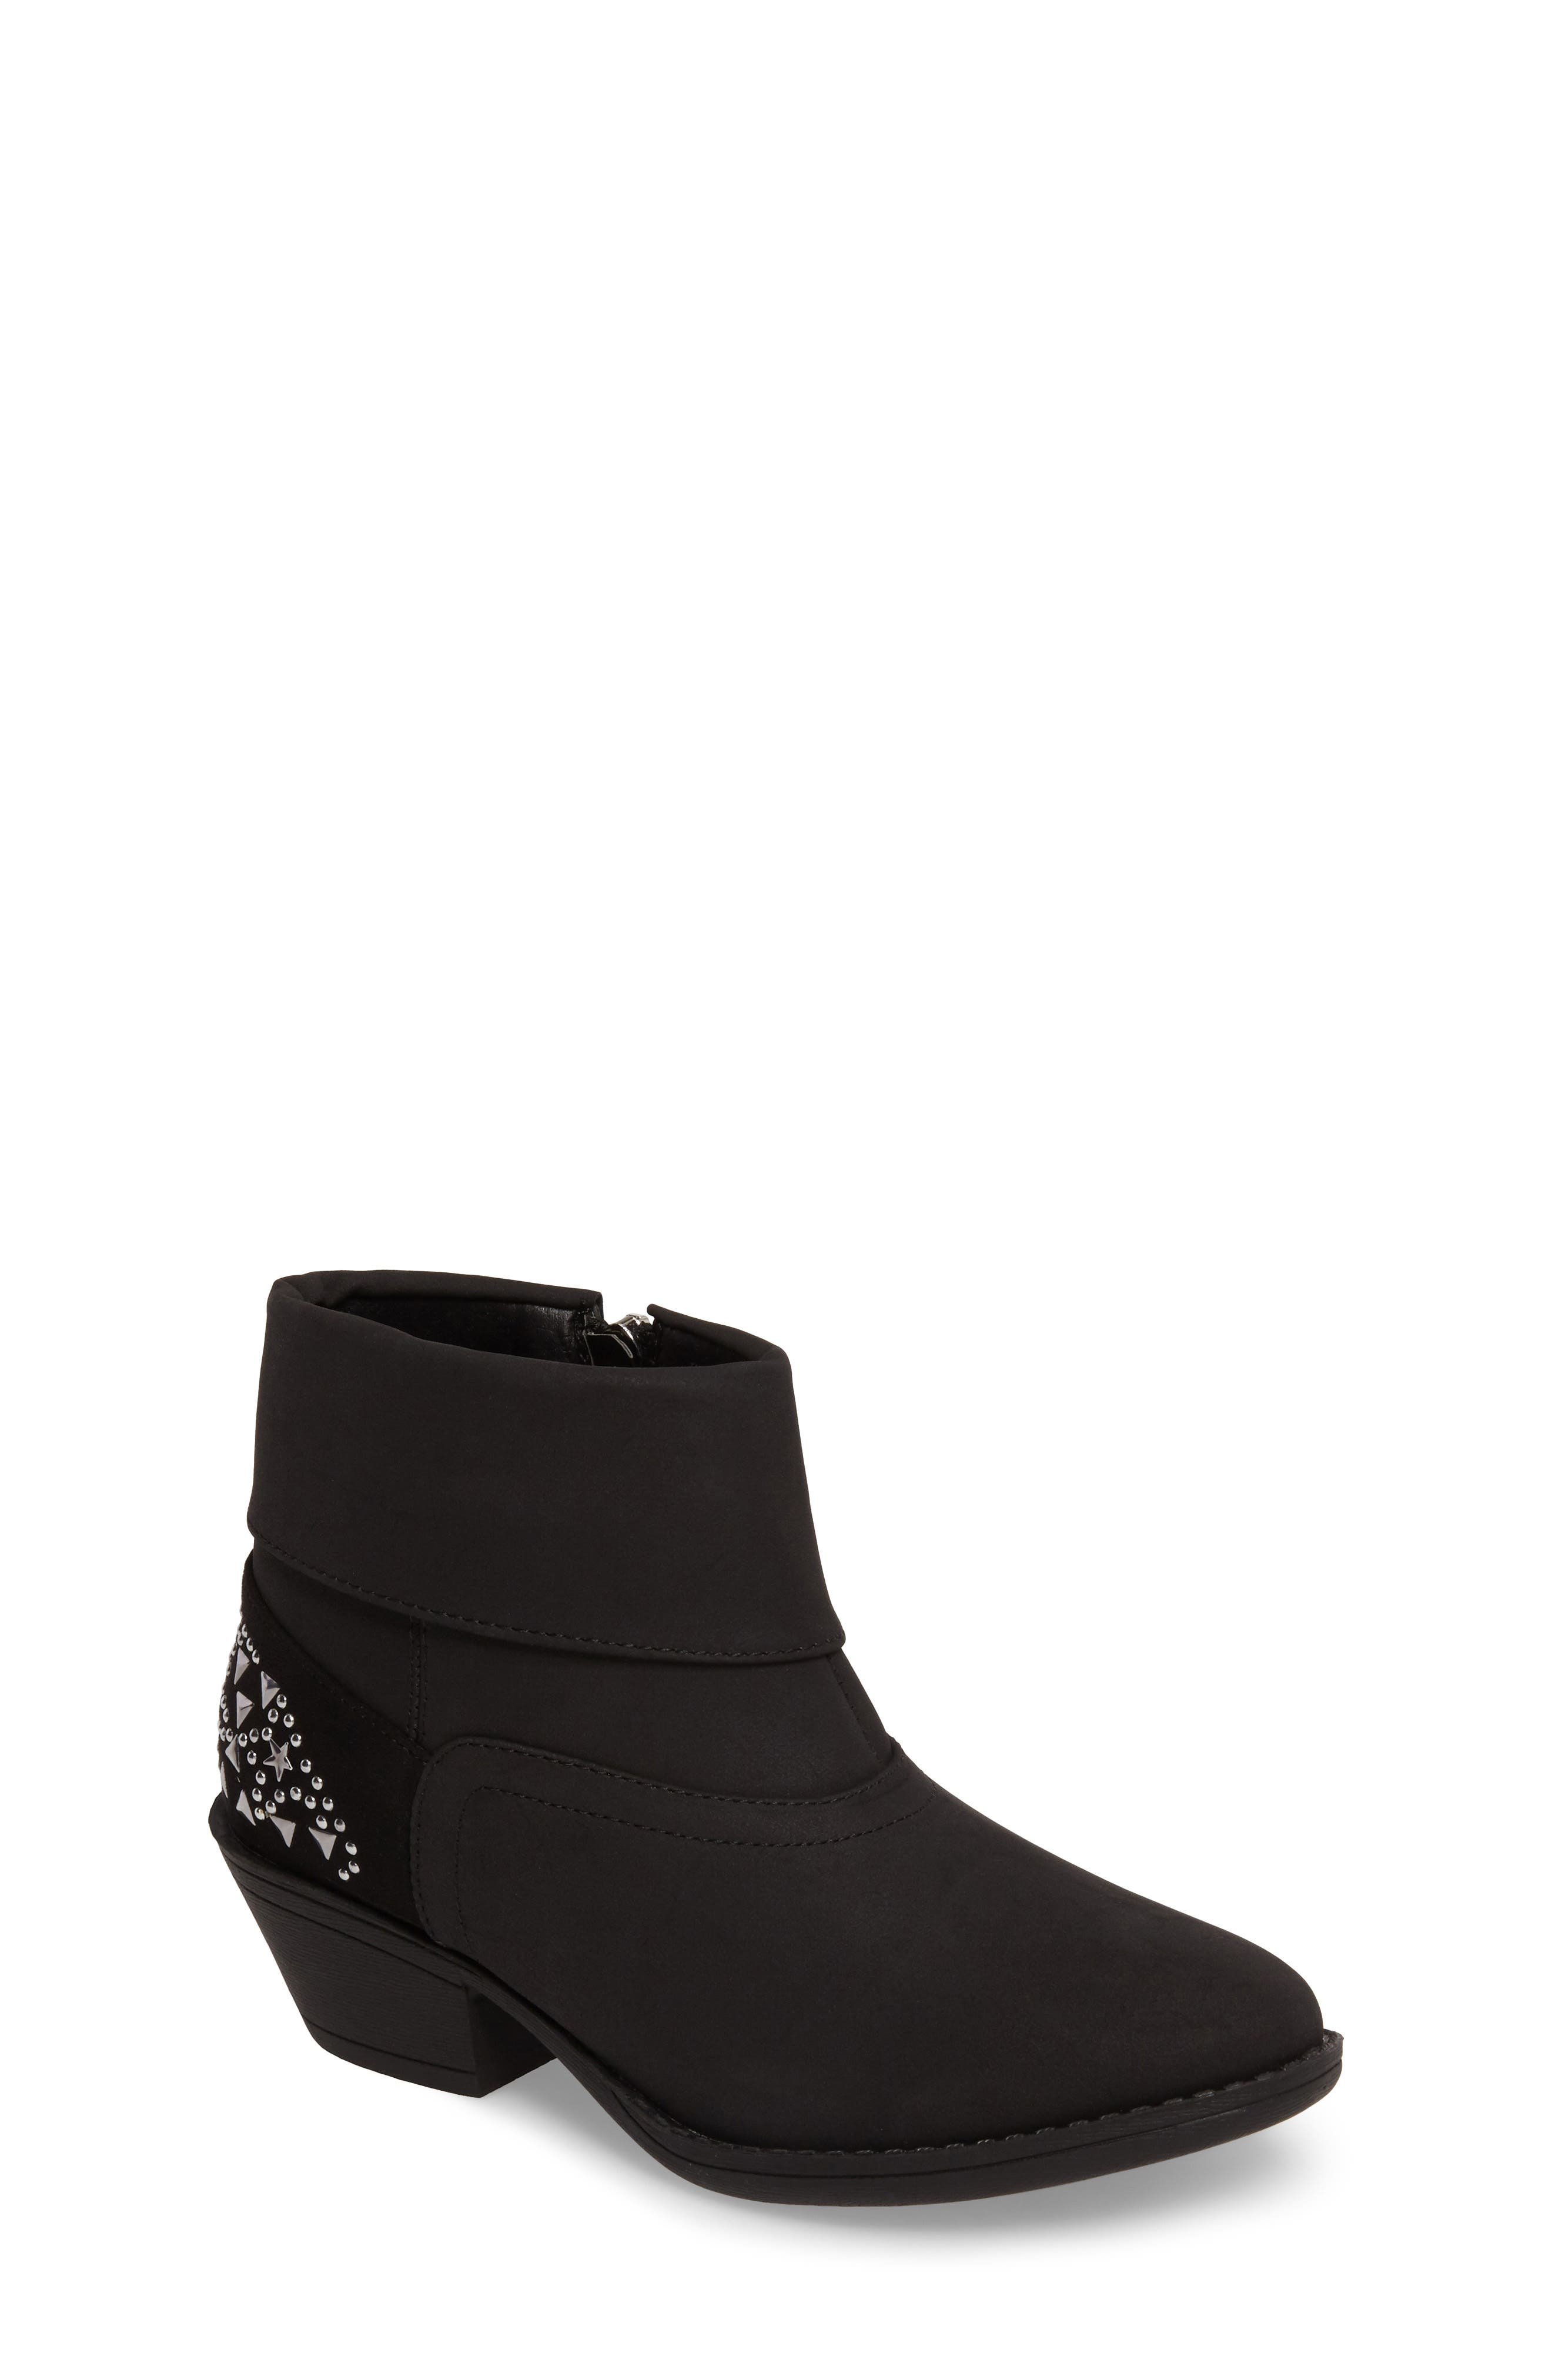 Alternate Image 1 Selected - Reaction Kenneth Cole Taylor Star Bootie (Toddler, Little Kid & Big Kid)